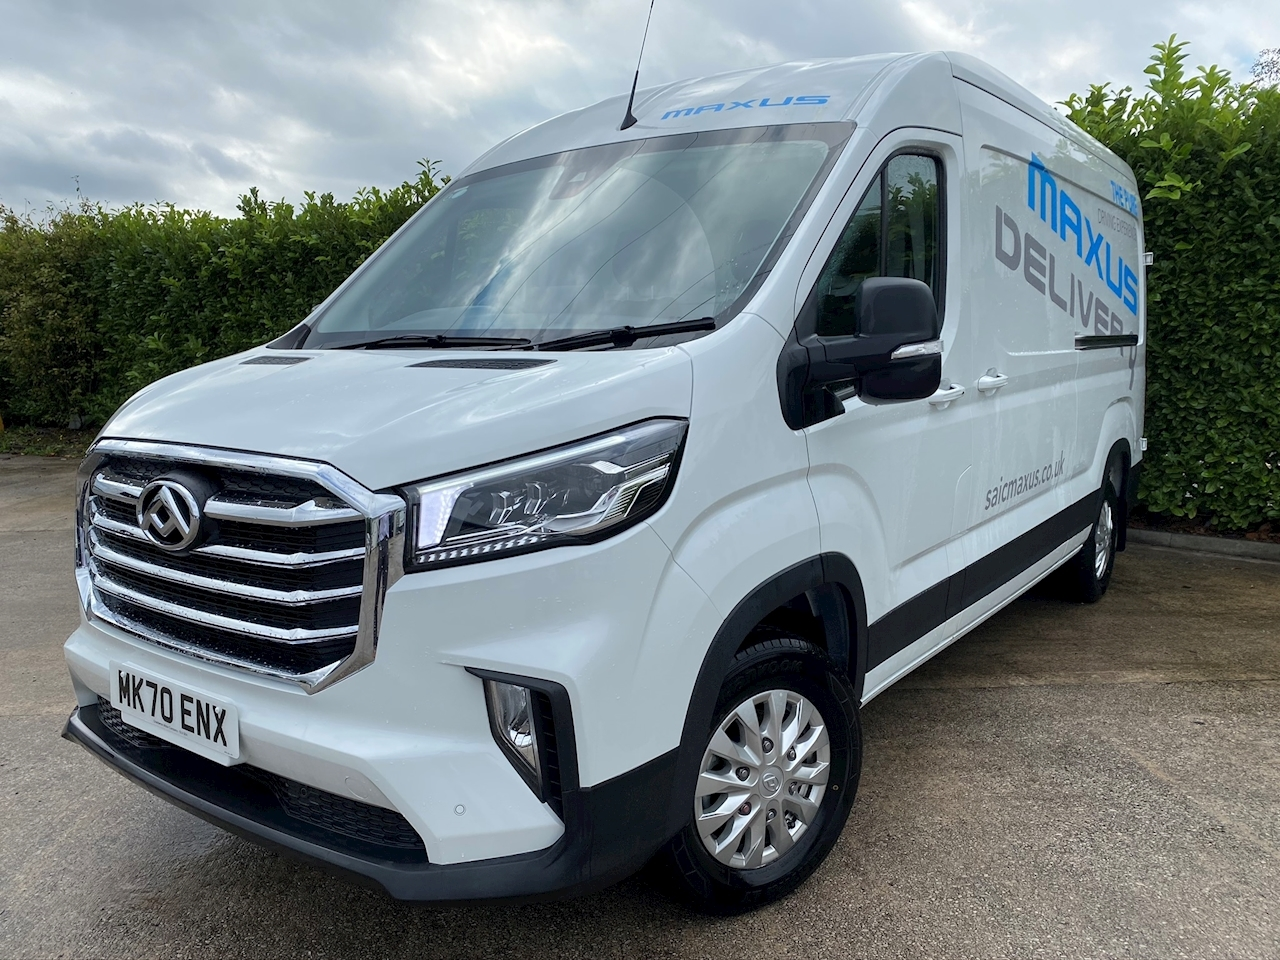 Deliver 9 RWD High Roof Lux 2.0 5dr Panel Van Manual Diesel